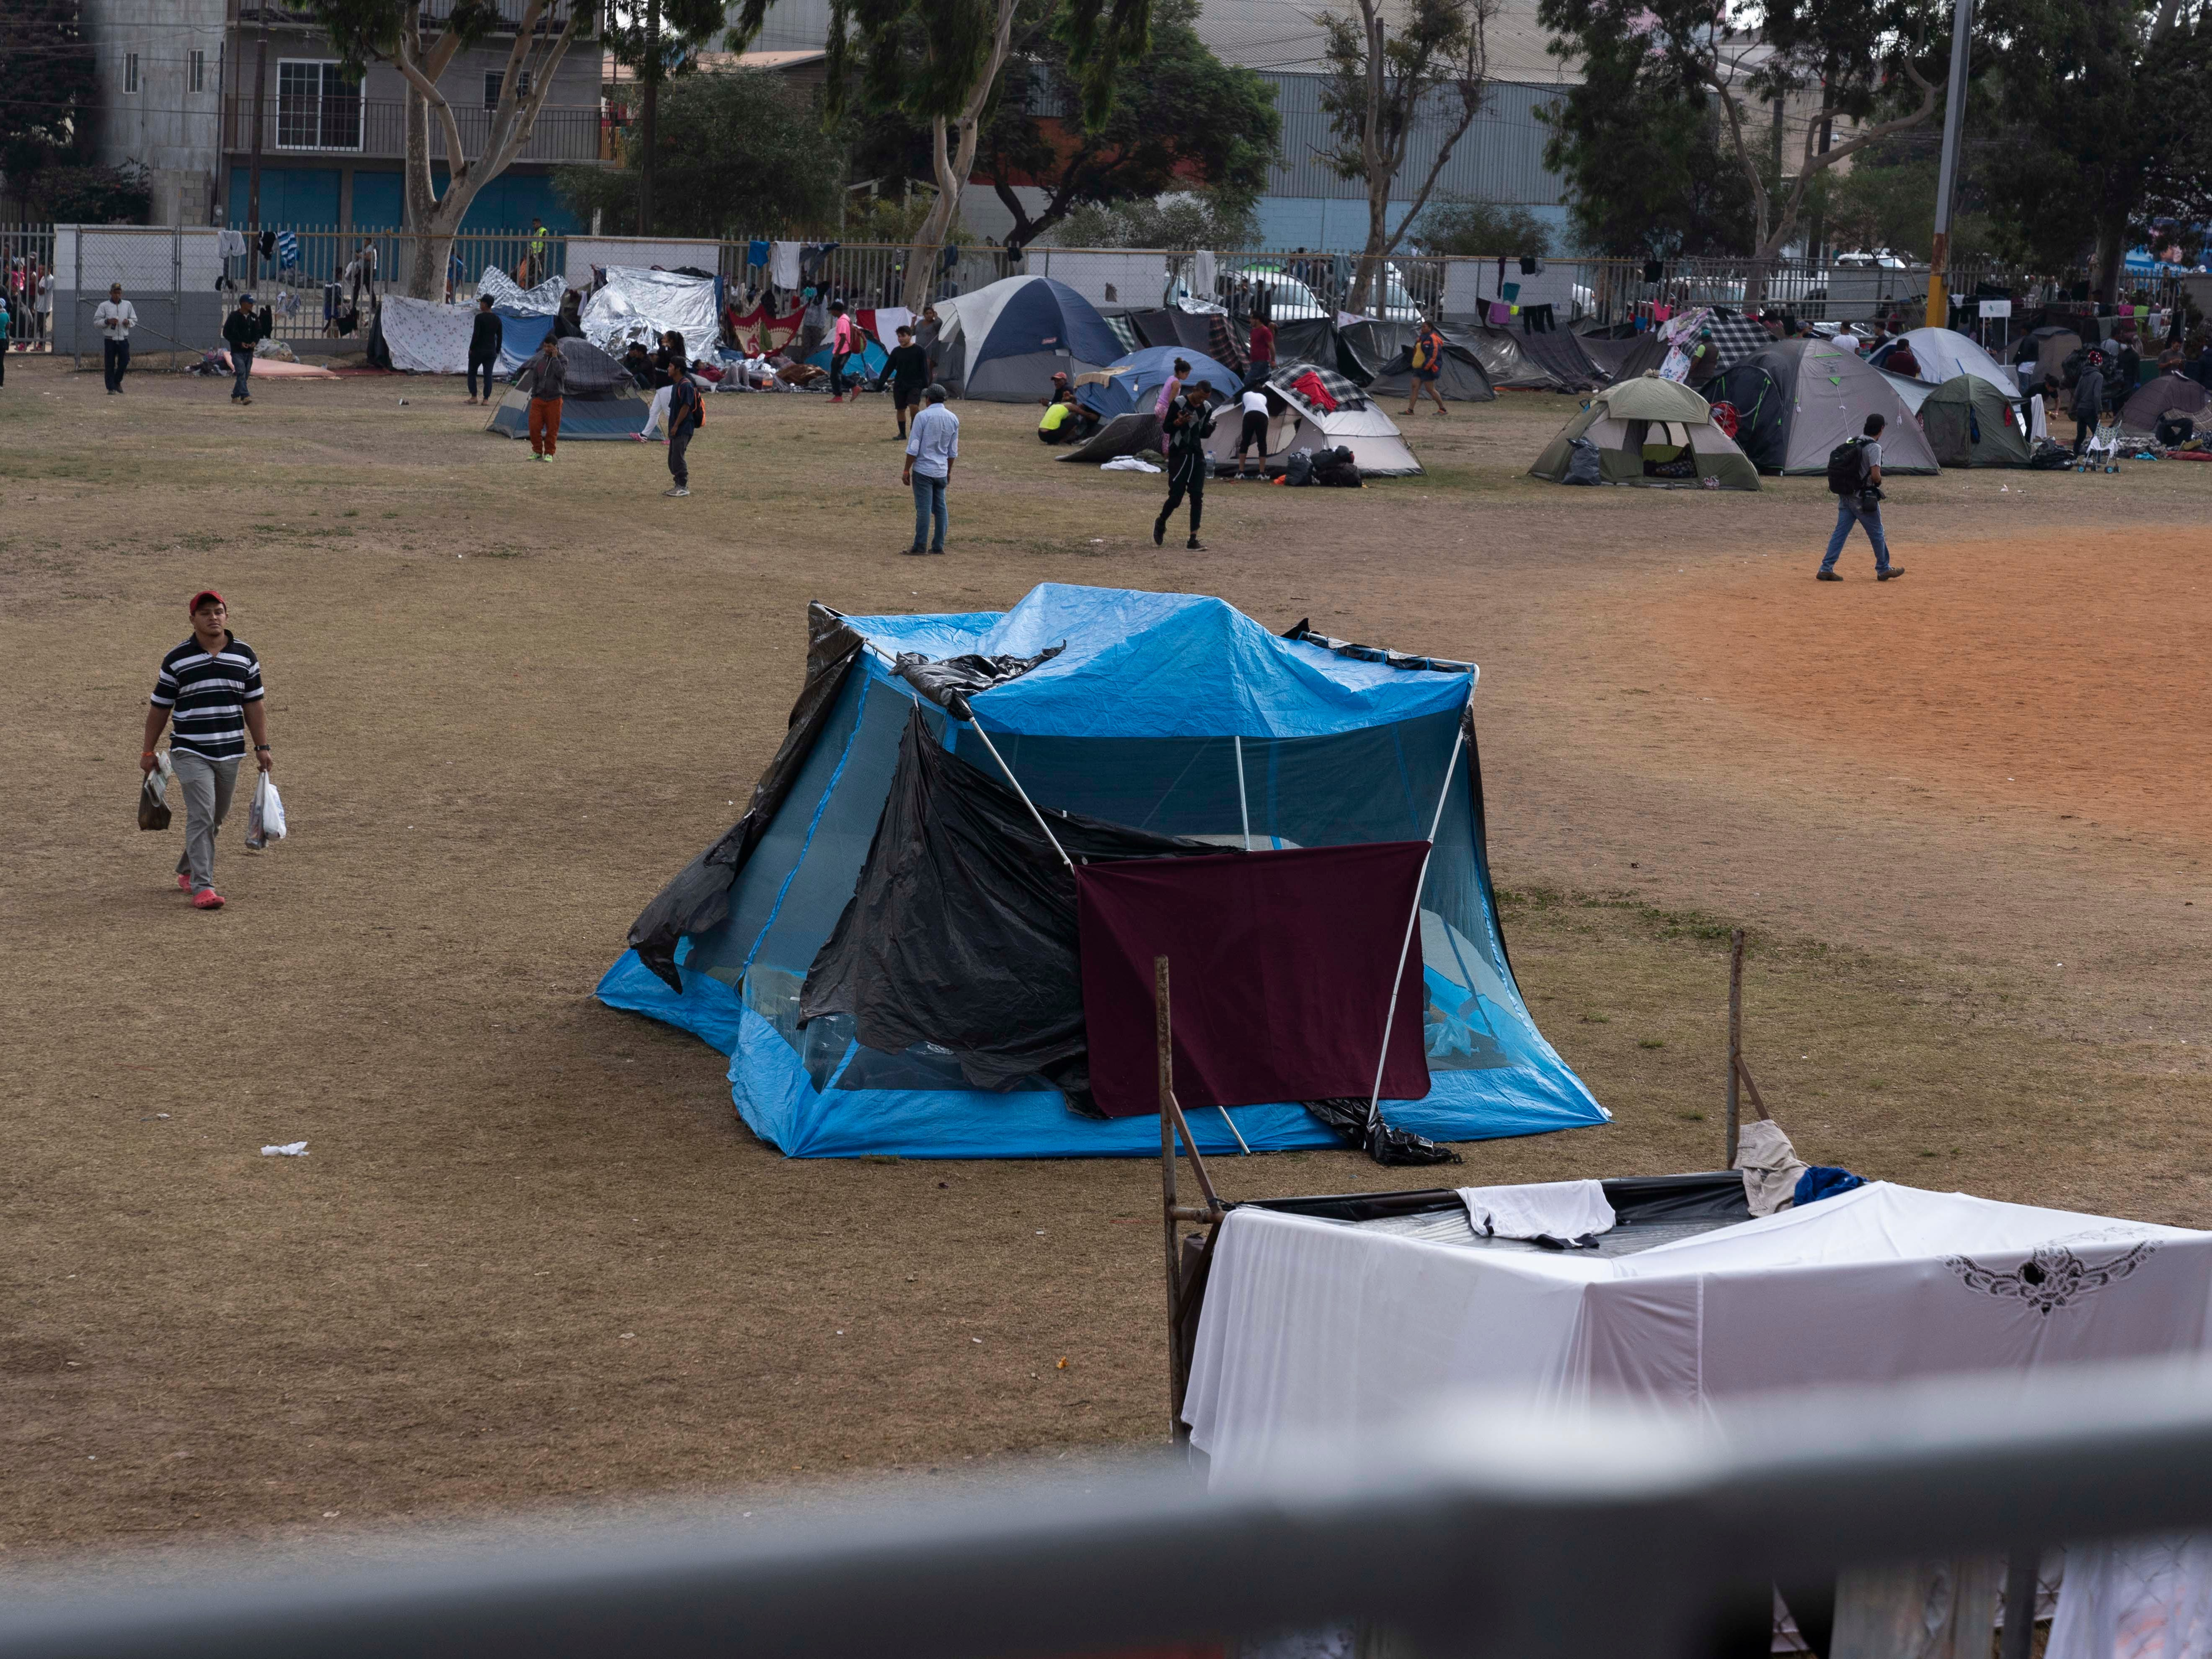 Over 2,500 Central American migrants live at the Unidad Deportiva Benito Juarez, a makeshift shelter, in Tijuana, Mexico on Nov. 20, 2018. Migrants set up camp around the baseball stadium.